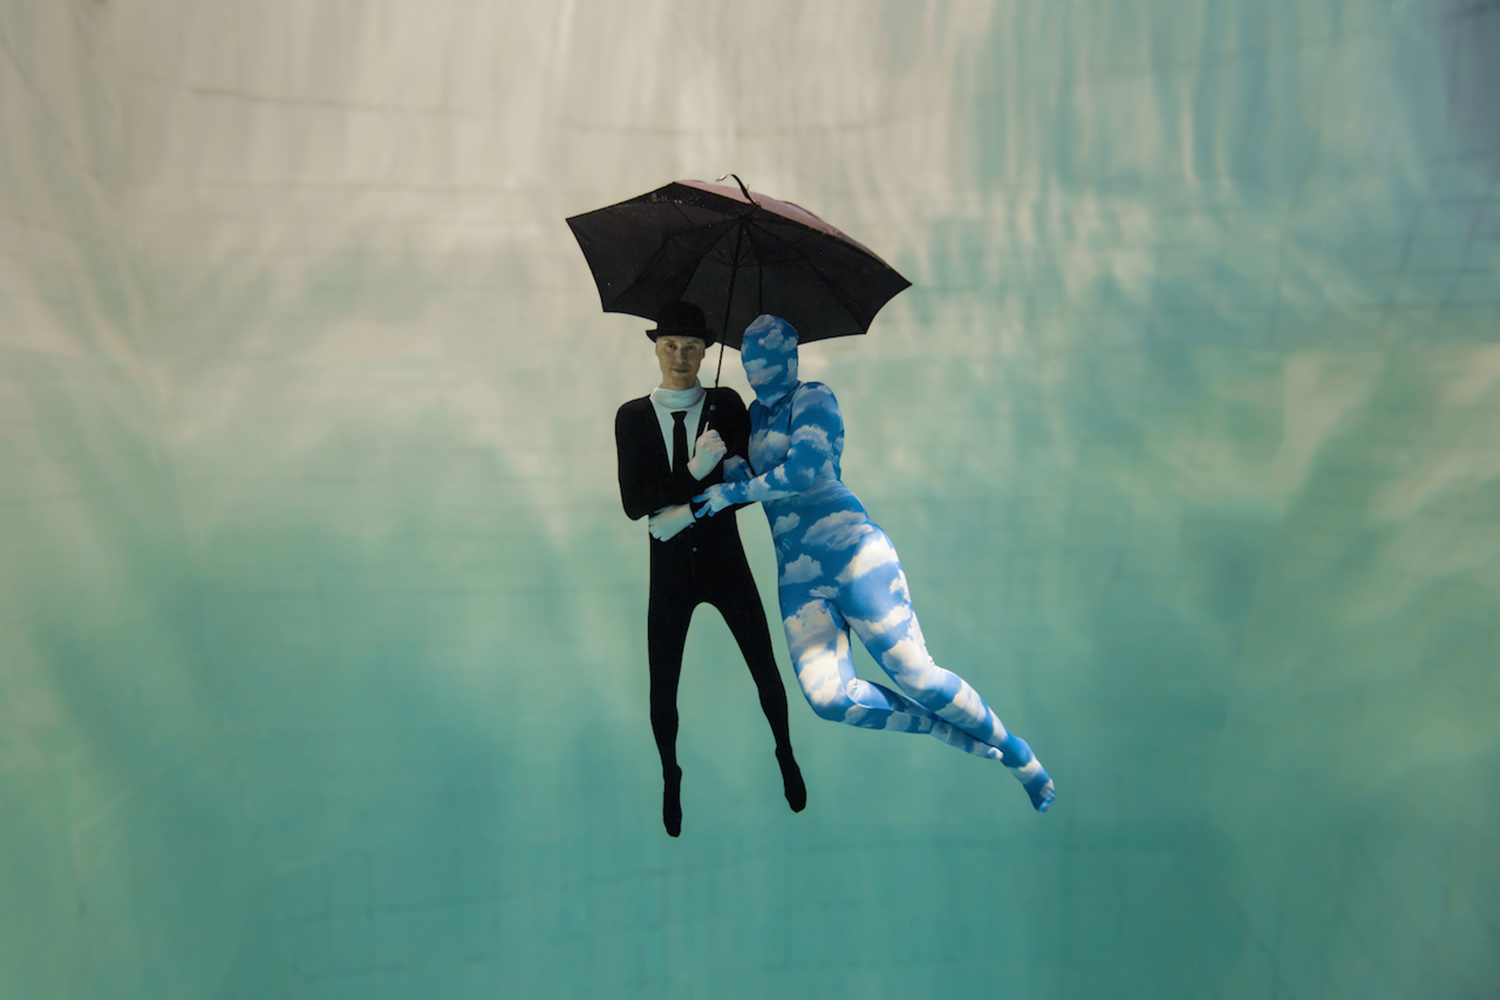 magritte inspired underwater photo shoot, Daan Verhoeven